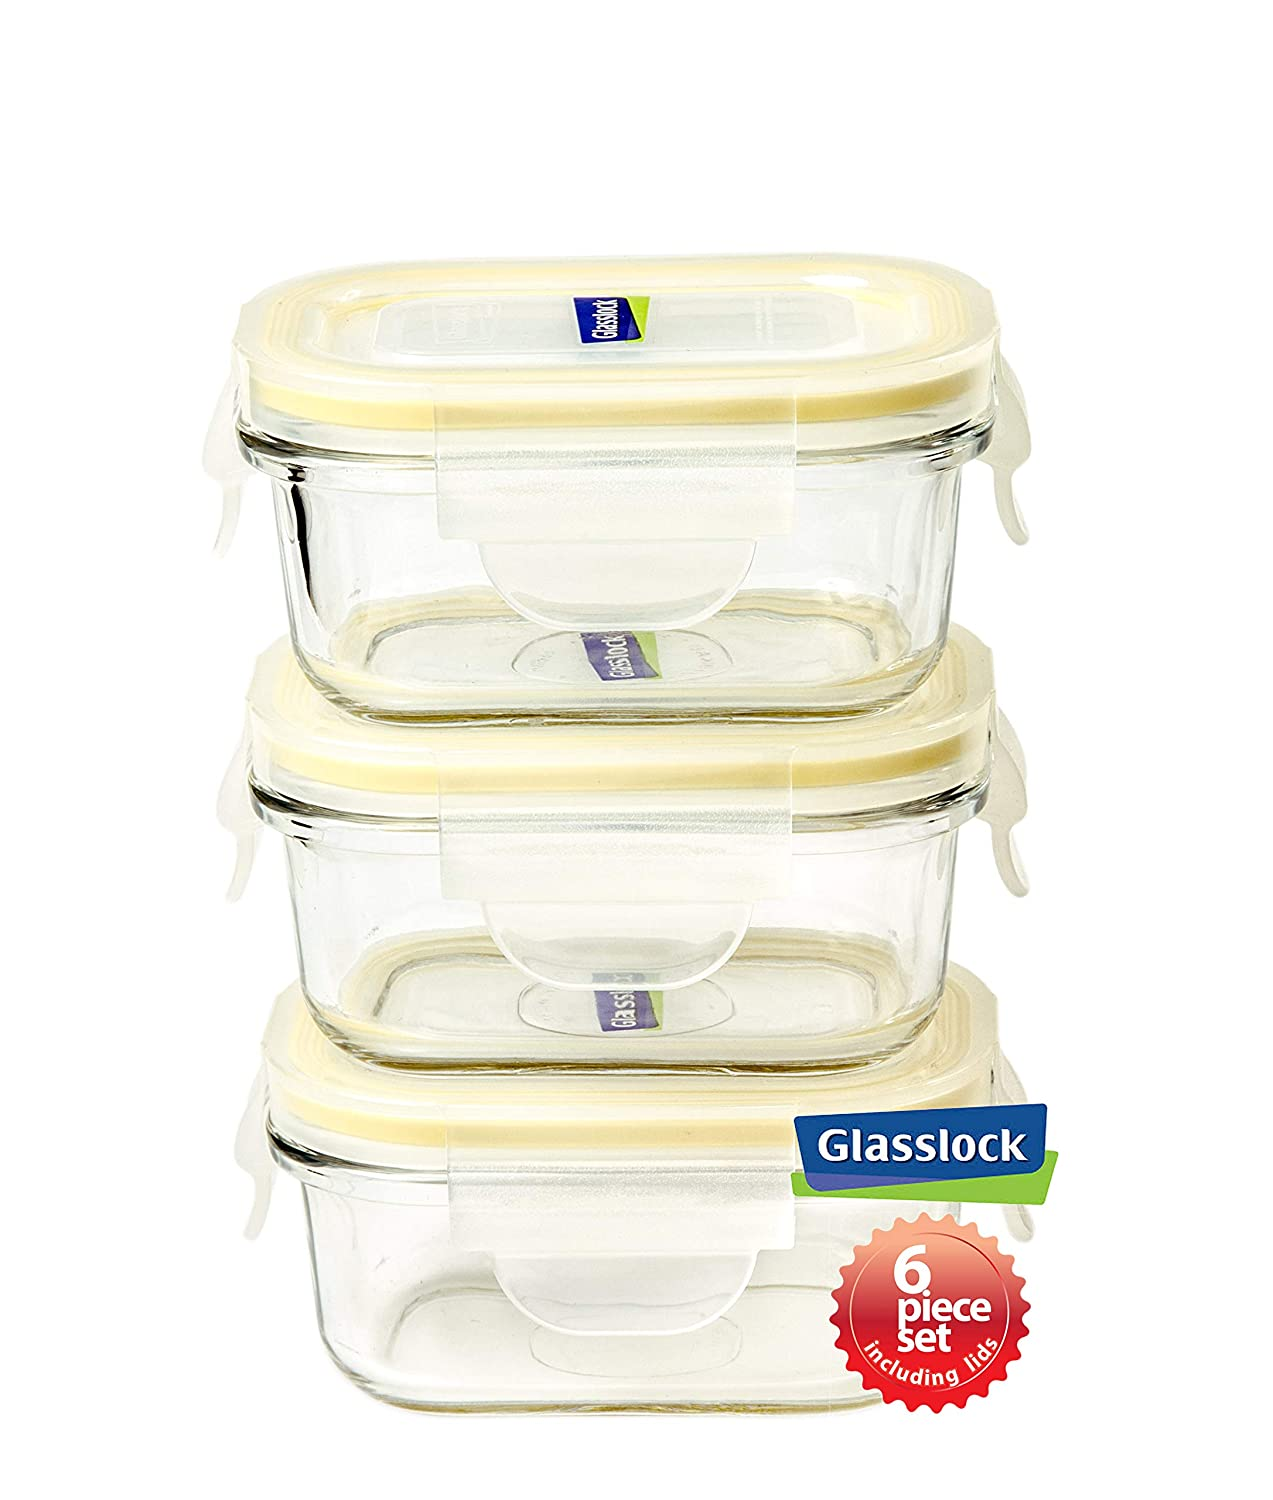 Glasslock Food-Storage Container with Locking Lids Microwave Safe 6pcs Set Rectangular 5oz Yum